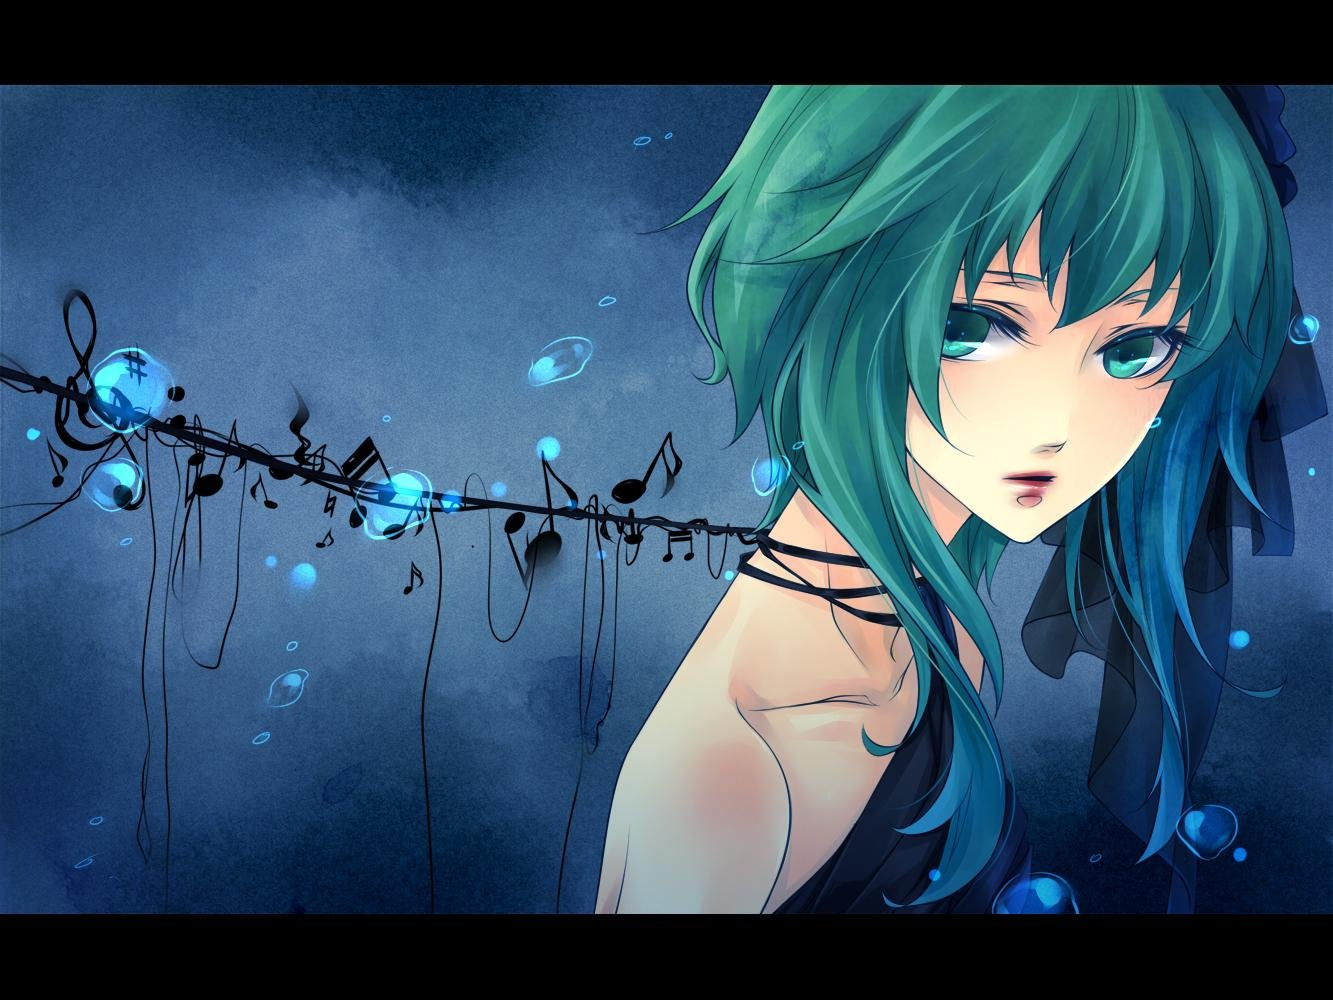 Dark Anime Girl Wallpaper 9328 Hd Wallpapers in Anime   Imagescicom 1333x1000